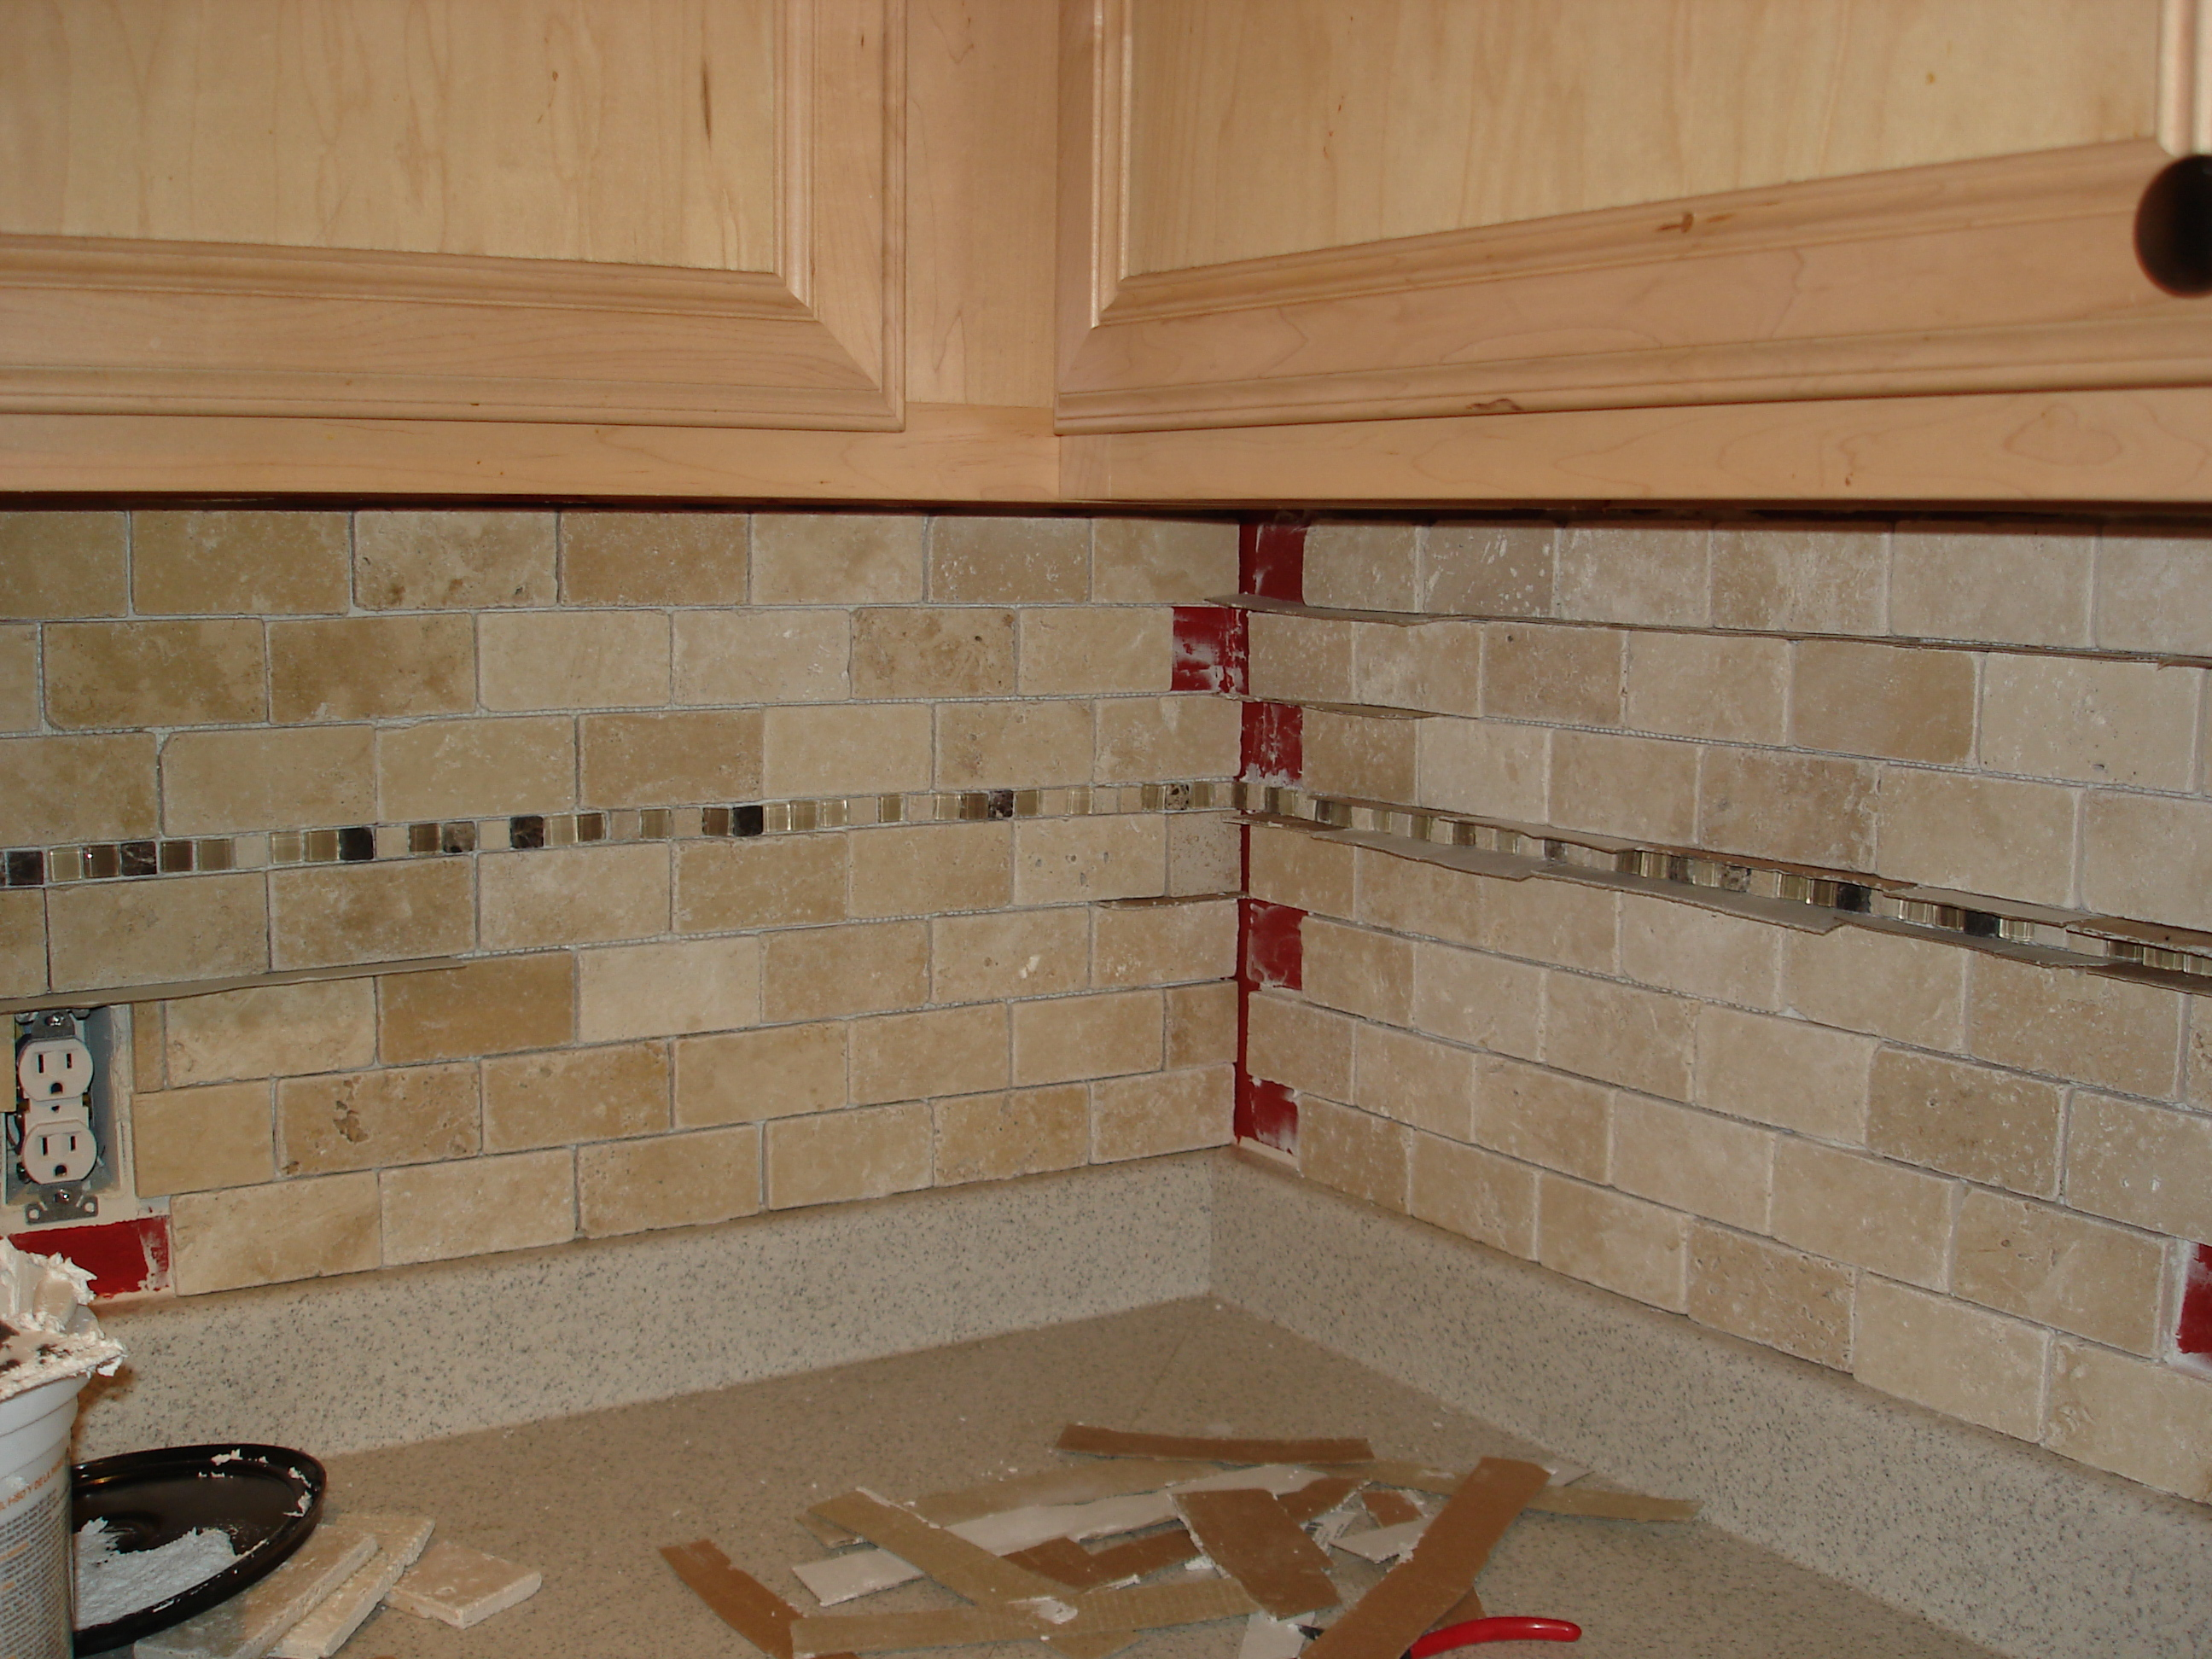 Tutorial tile kitchen back splash when you come upon an outlet youll need to make sure that you tile close enough to the outlet box so that the cover has good support but whatever you do dailygadgetfo Choice Image